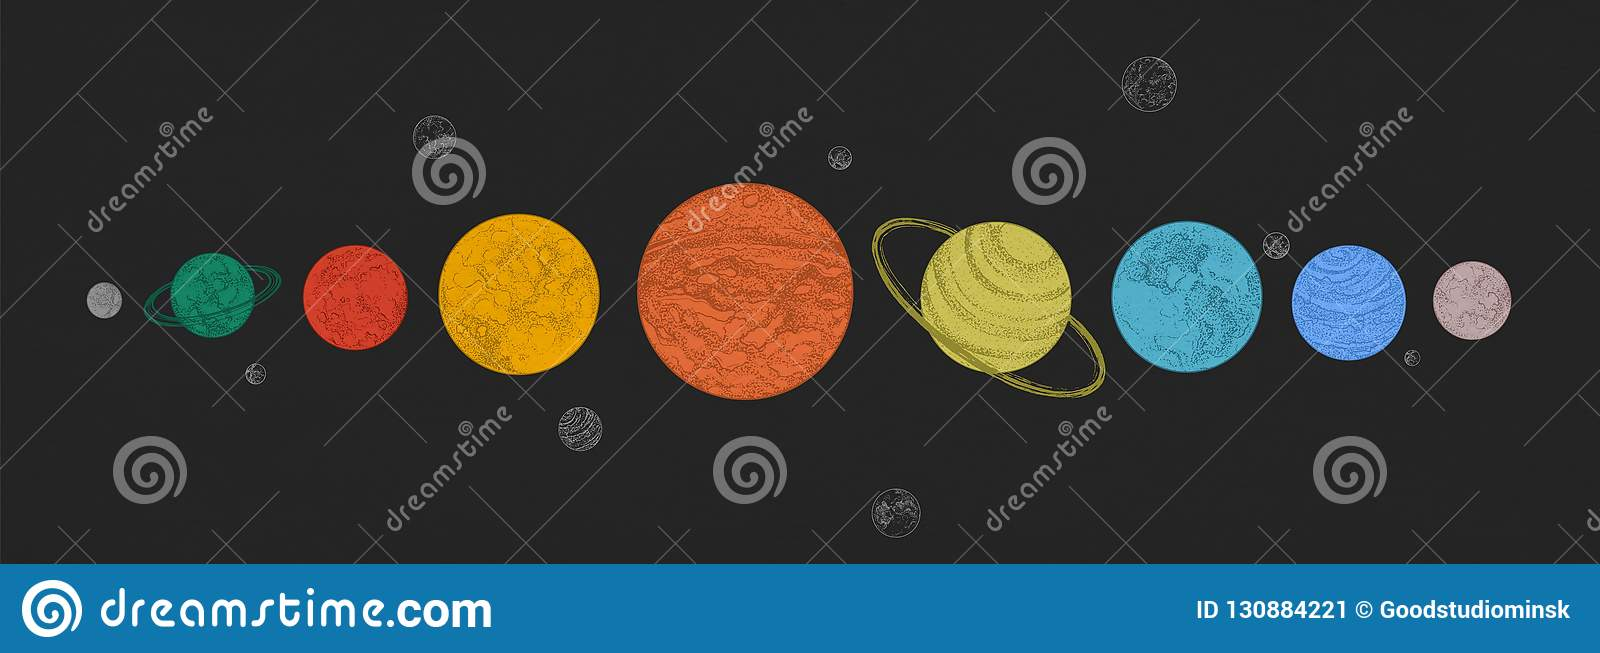 Planets of Solar system arranged in horizontal row against black background. Celestial bodies in outer space. Natural